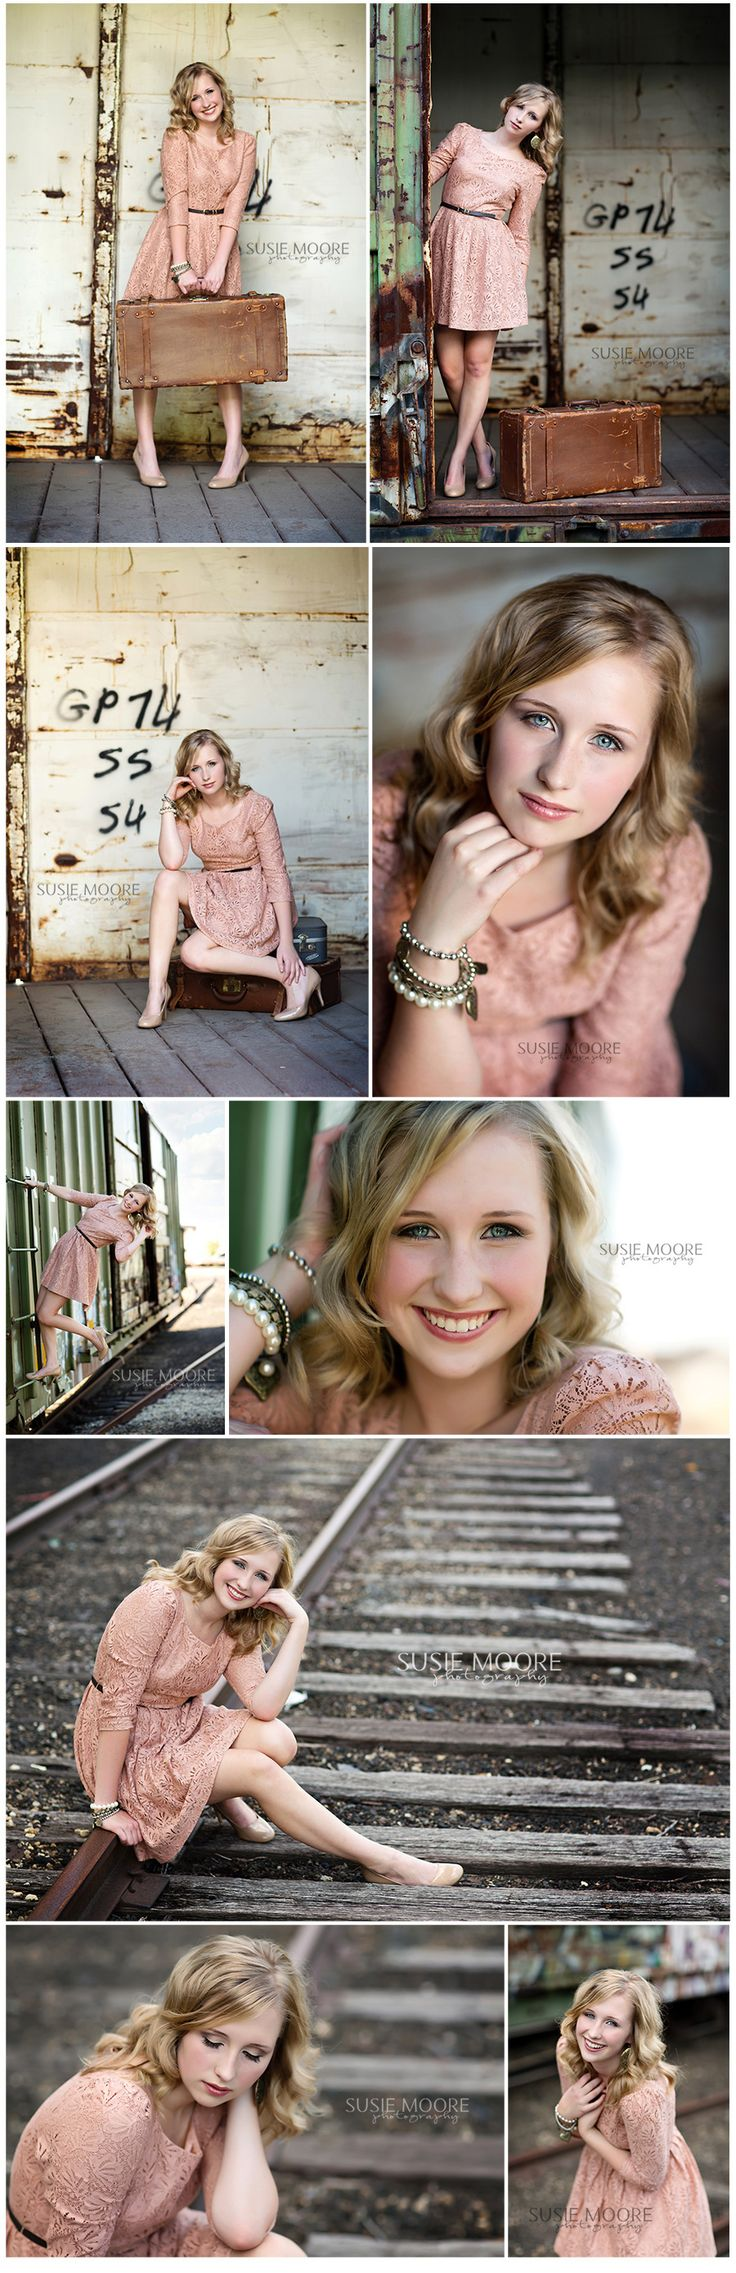 Last two poses are beautiful. Chicago Senior Photography | Susie Moore Photography | Senior Girl